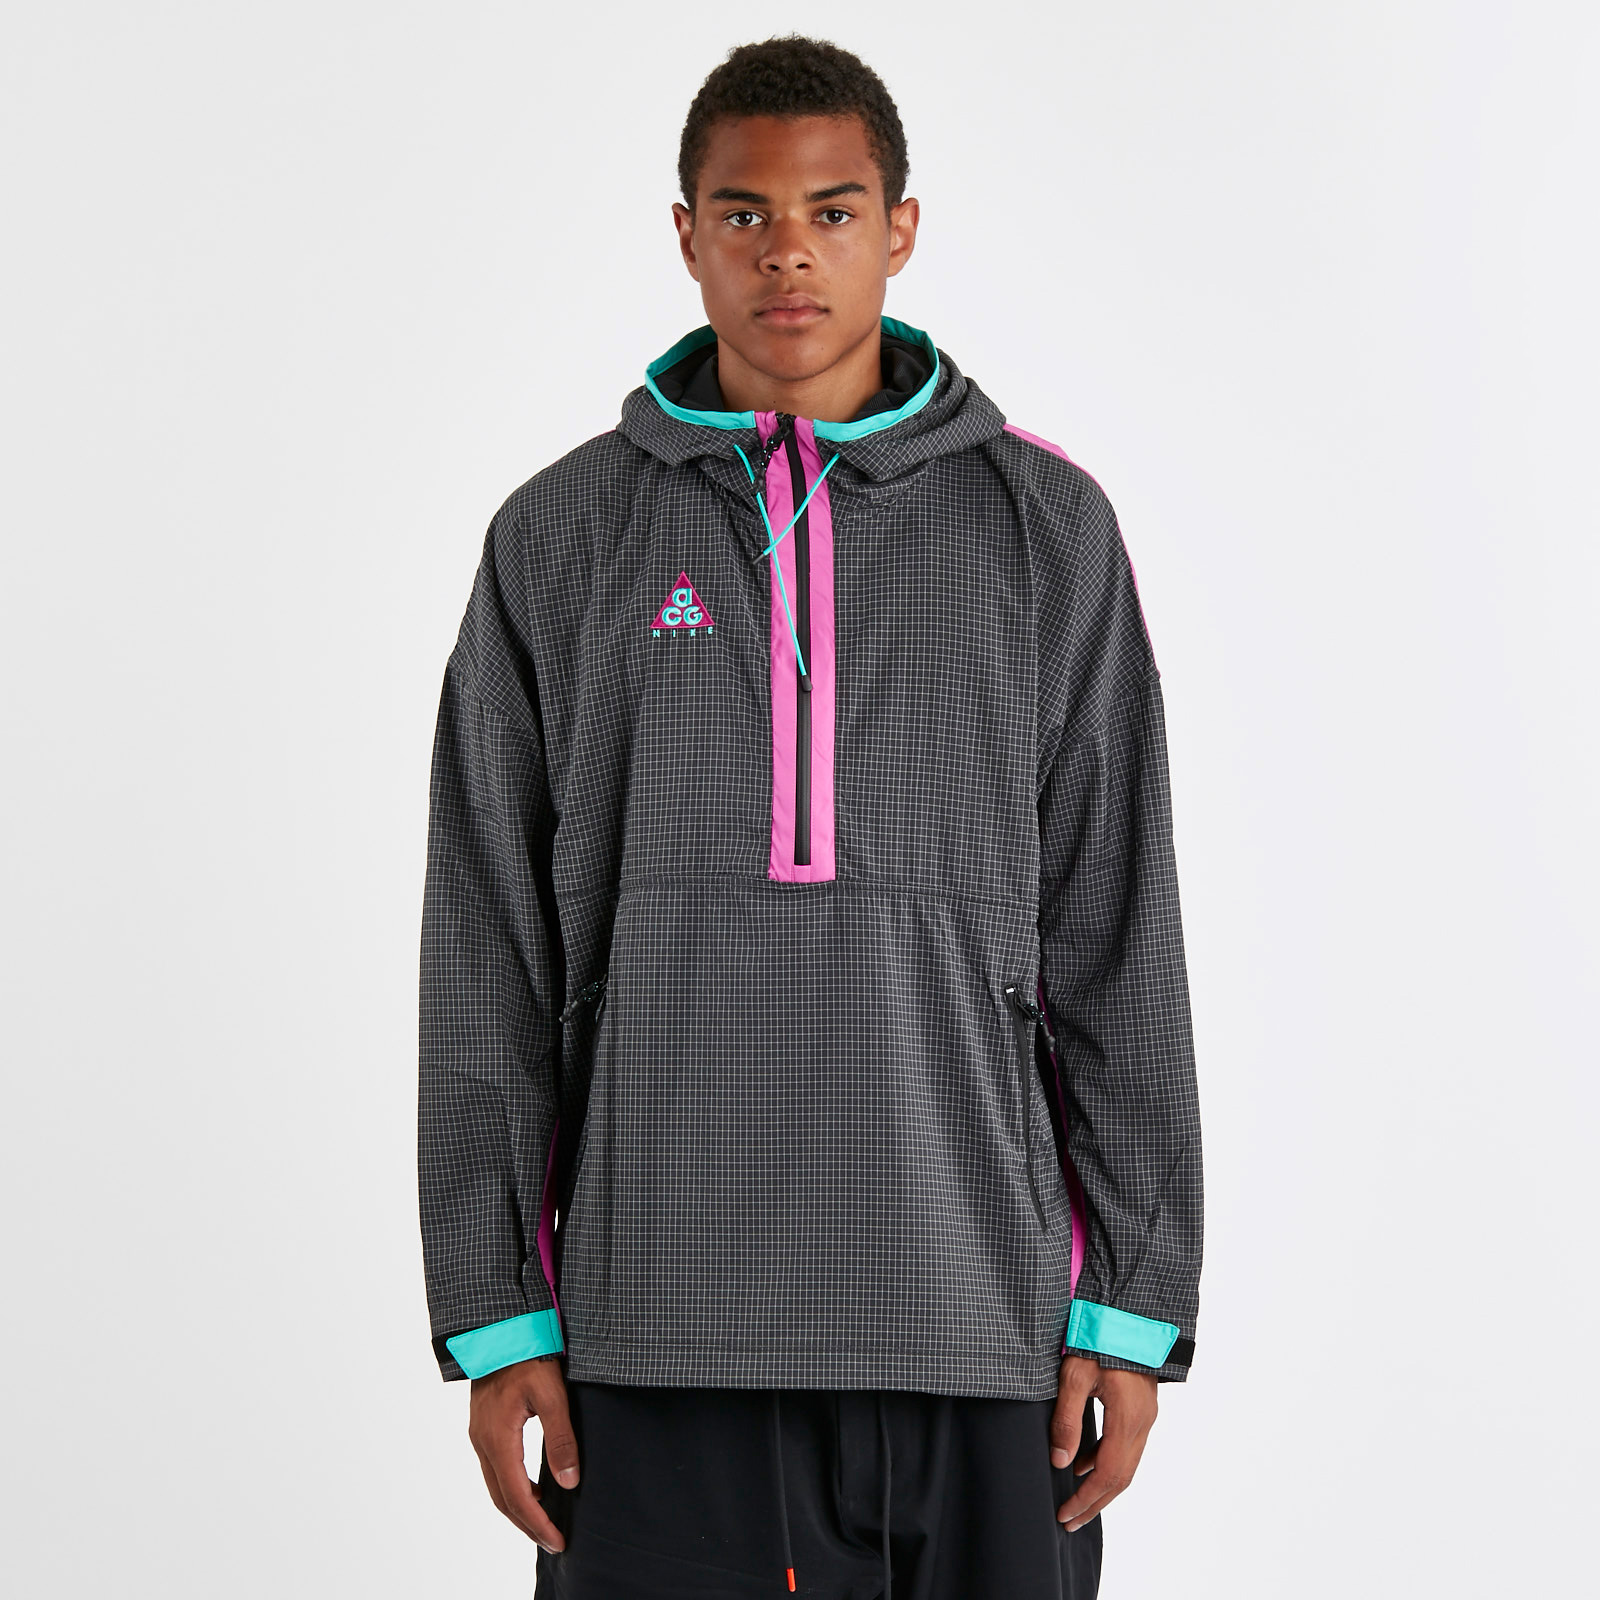 d489887b35ba Nike Woven Hooded Jacket - 931907-060 - Sneakersnstuff